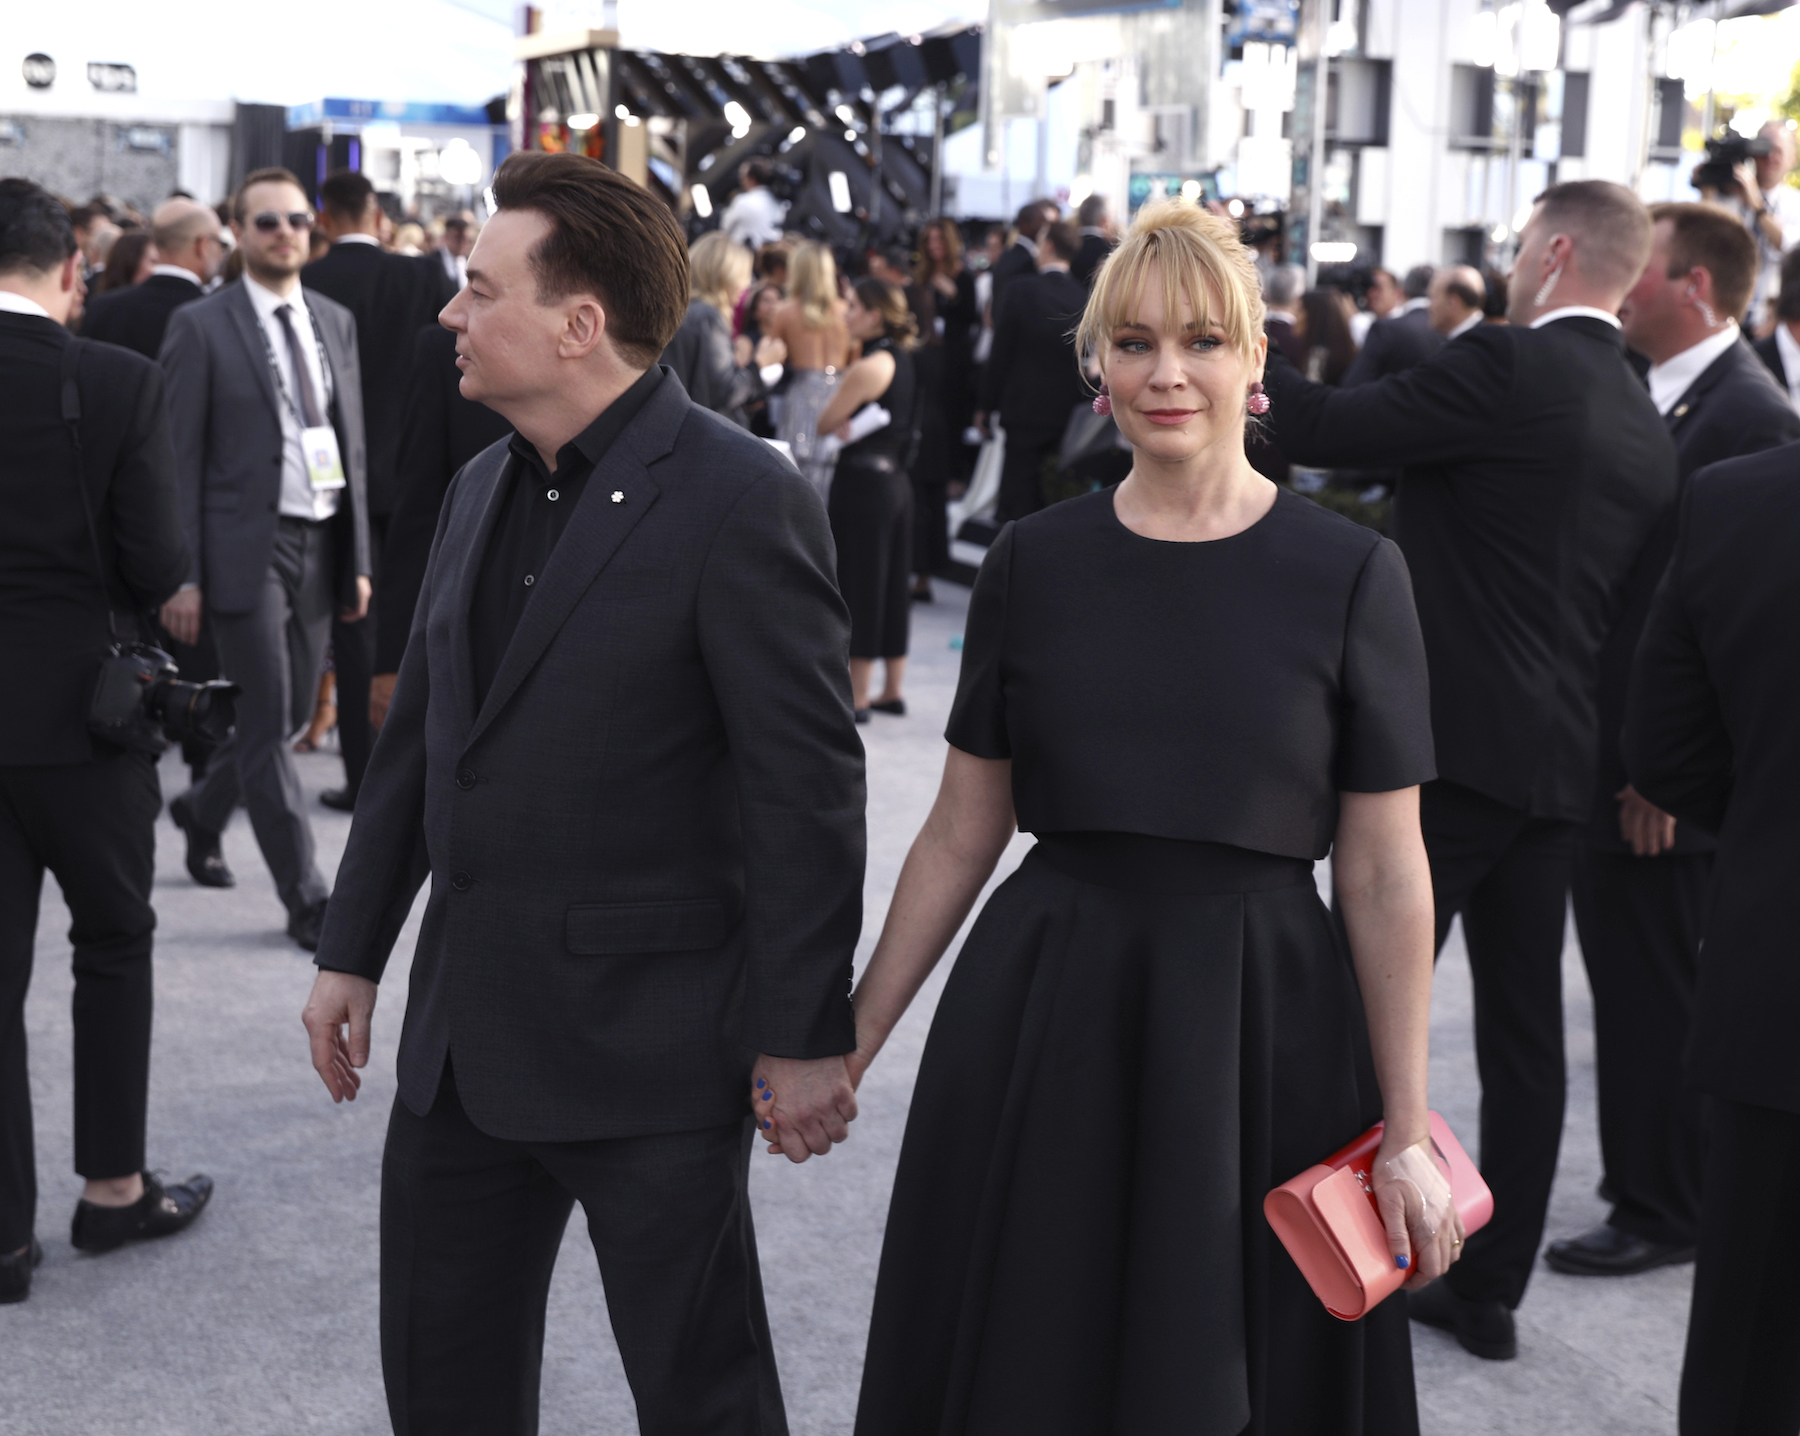 "<div class=""meta image-caption""><div class=""origin-logo origin-image ap""><span>AP</span></div><span class=""caption-text"">Mike Myers, left, and Kelly Tisdale arrive at the 25th annual Screen Actors Guild Awards at the Shrine Auditorium & Expo Hall on Sunday, Jan. 27, 2019, in Los Angeles. (Matt Sayles/Invision/AP)</span></div>"